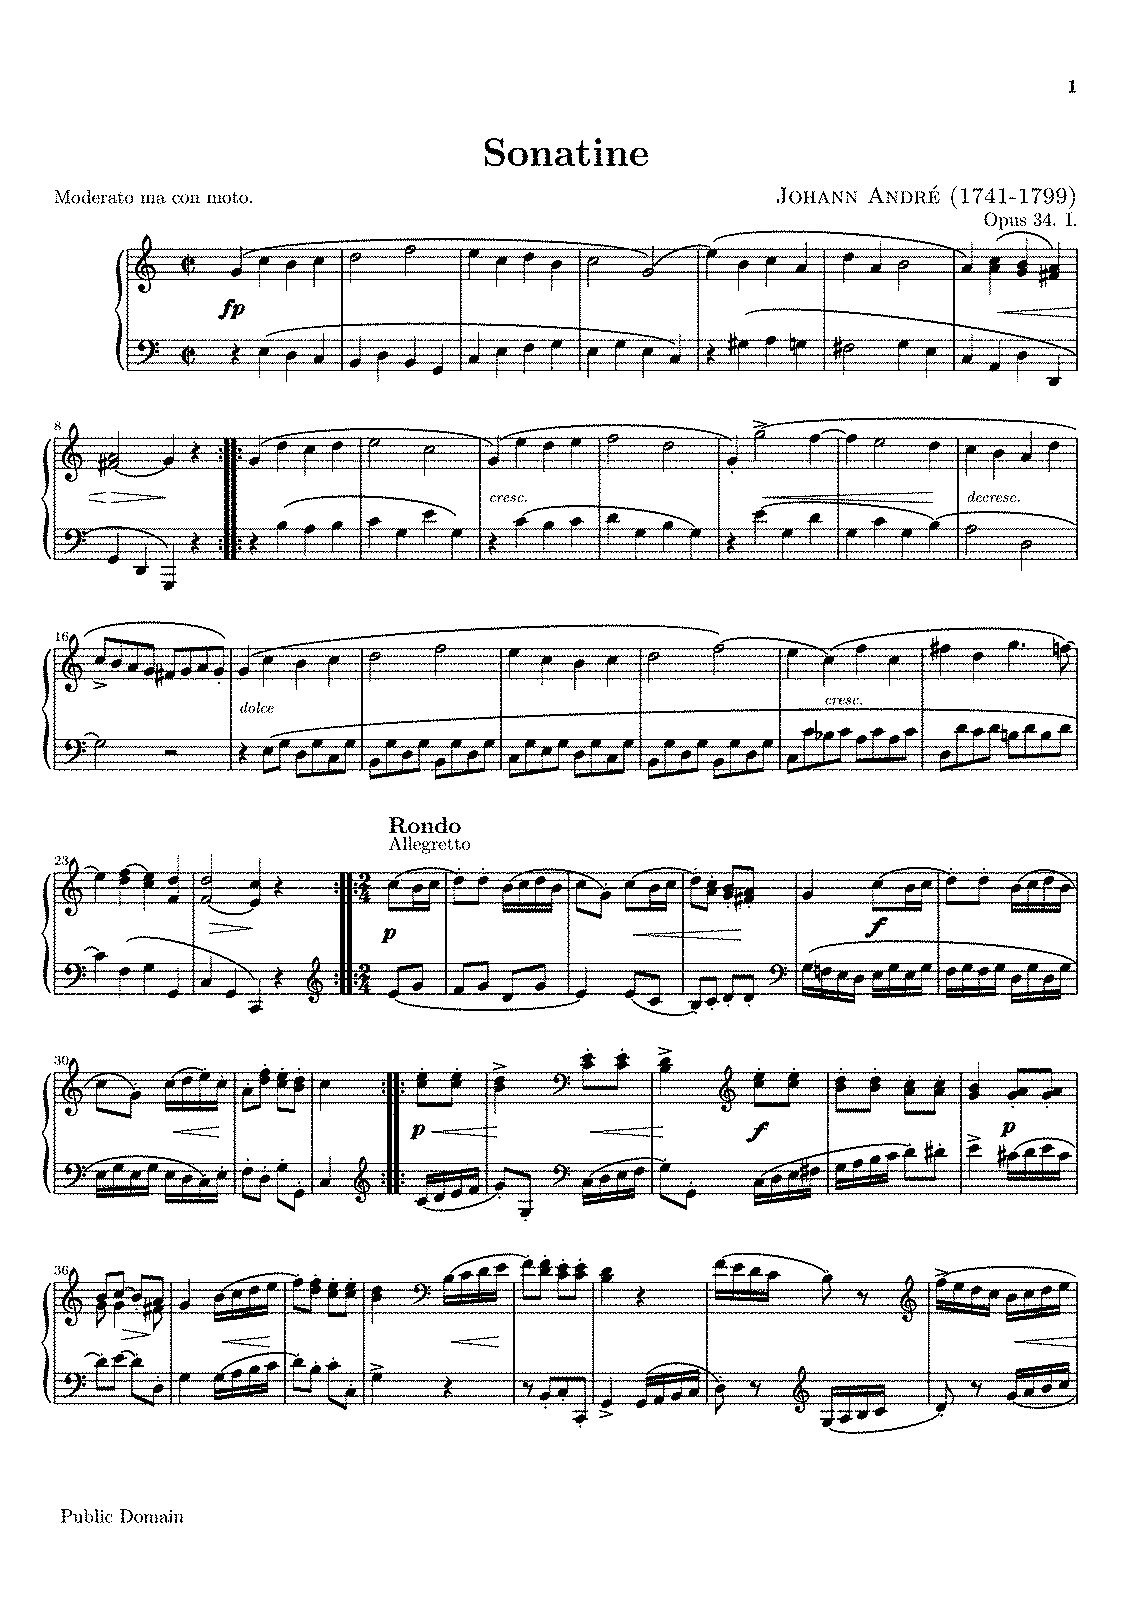 Andre - Sonatine for Piano, Op.34 No.1.pdf